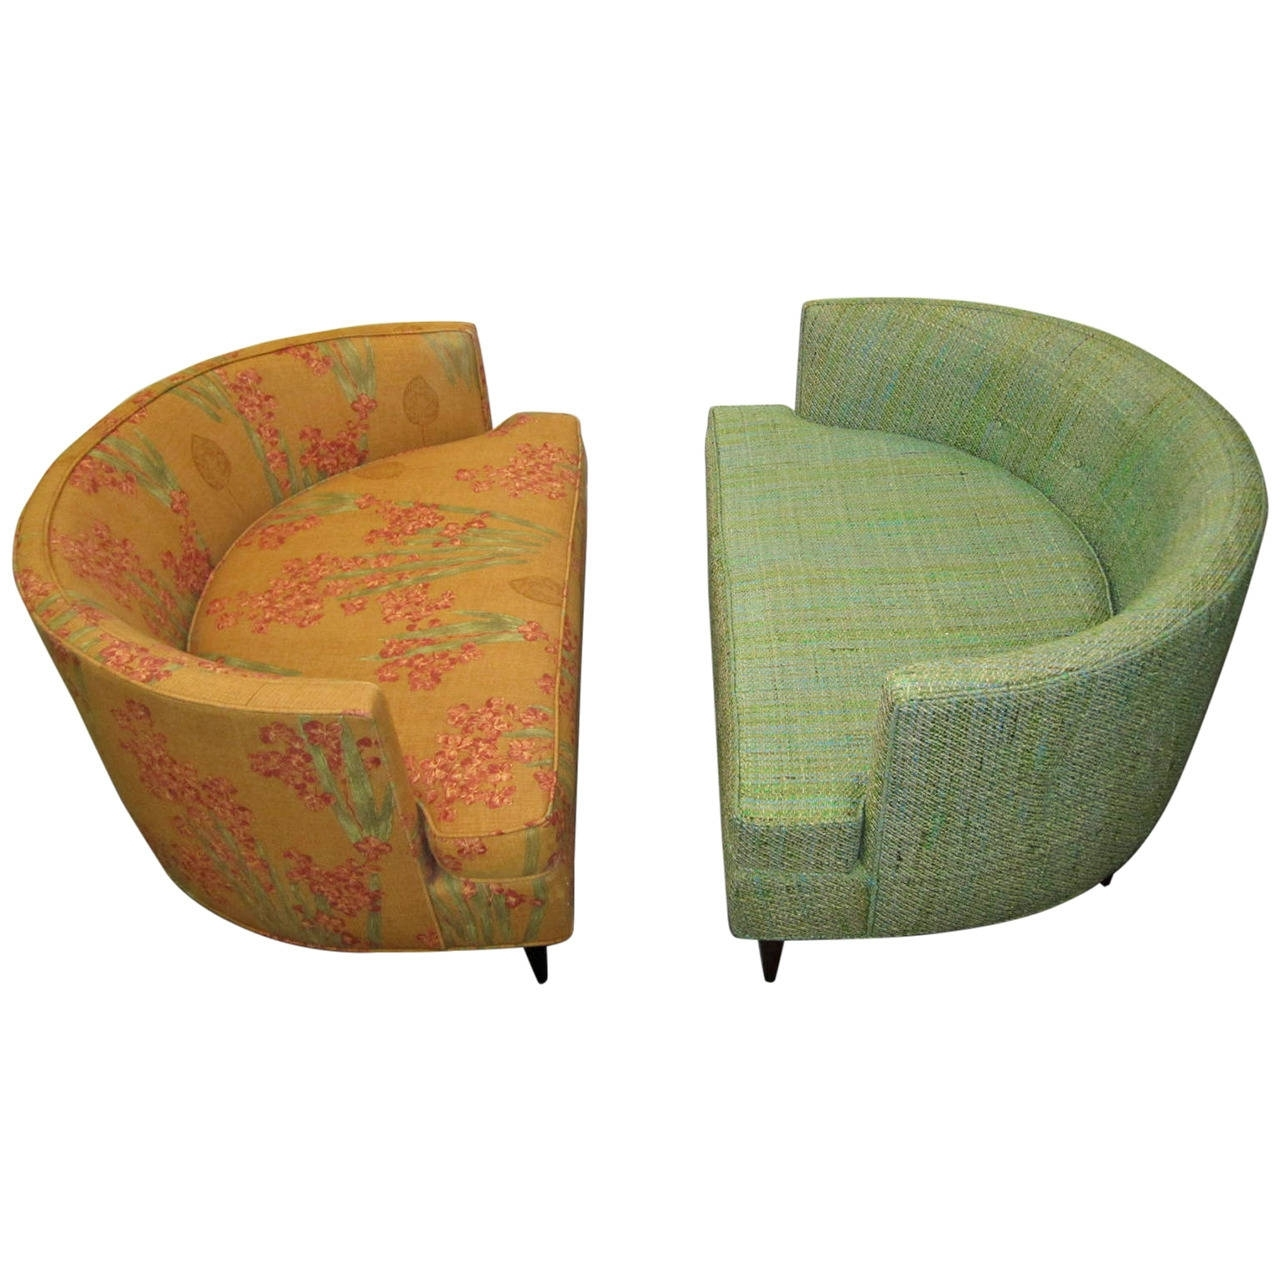 Pair Of Unusual Wide Semi Circle Milo Baughman Style Chairs Ottoman Intended For Chairs With Ottoman (View 8 of 10)